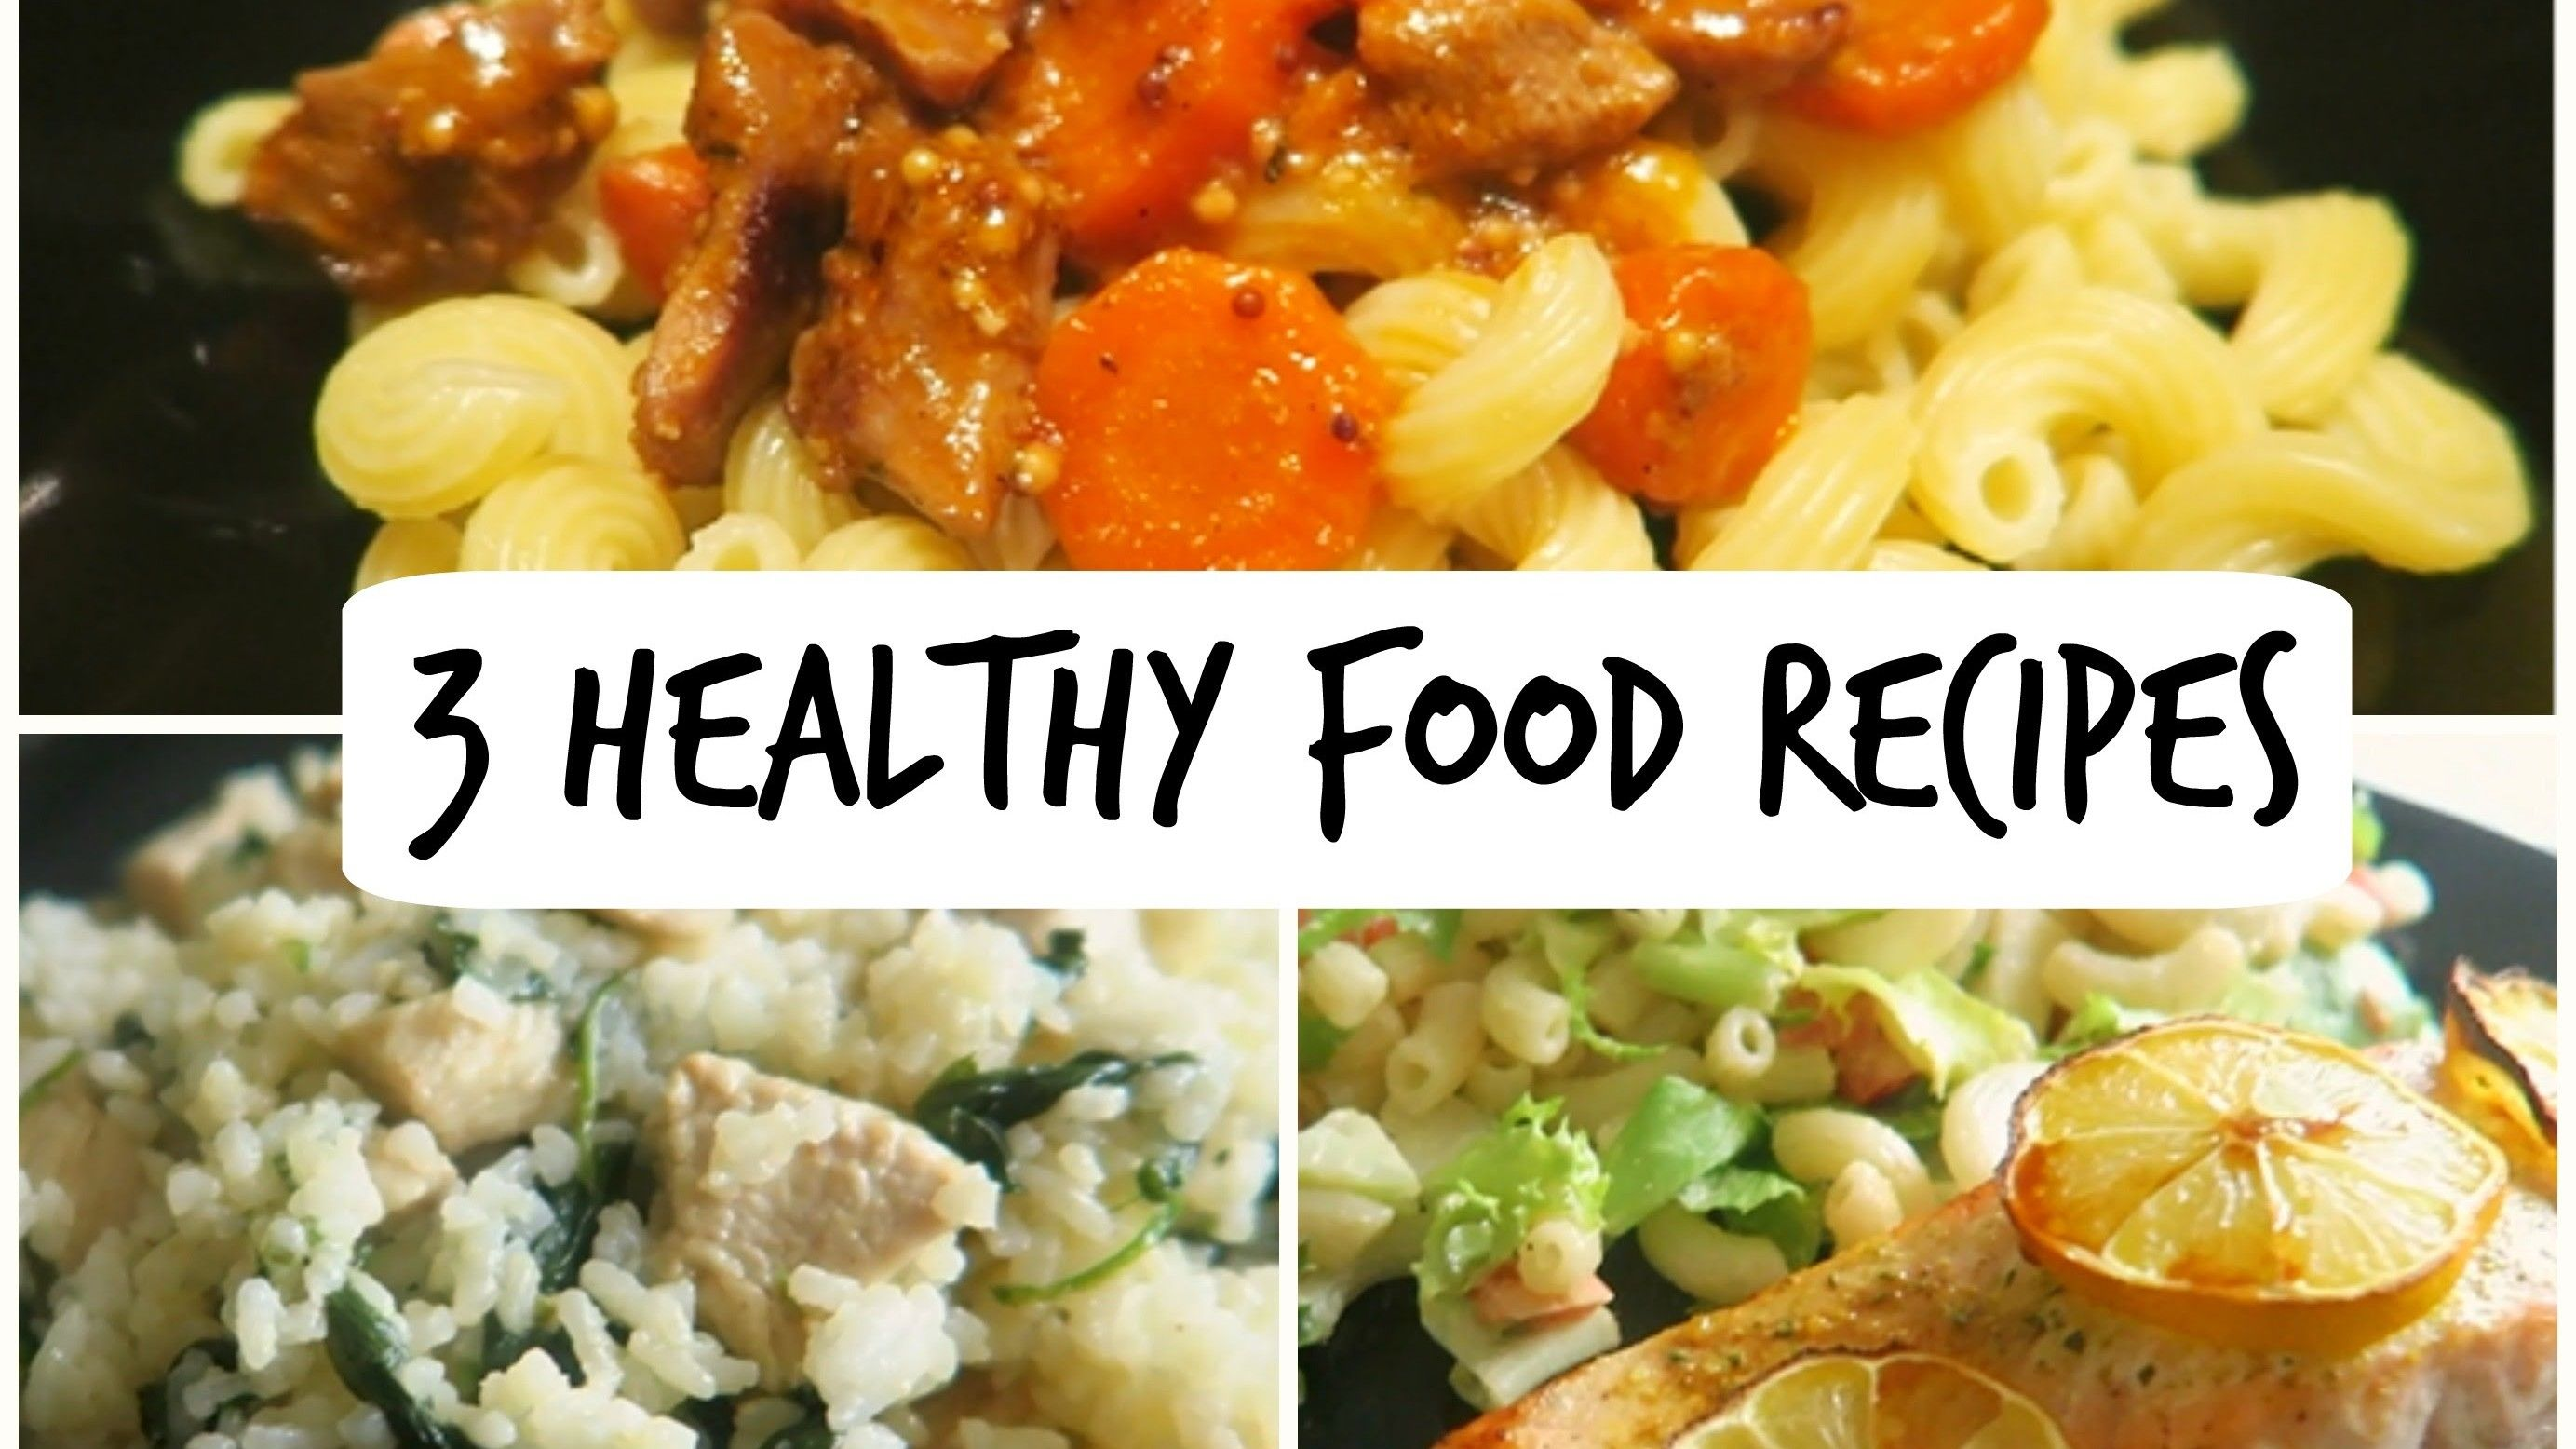 3 easy healthy food recipes healthy recipes pinterest 3 easy healthy food recipes forumfinder Gallery